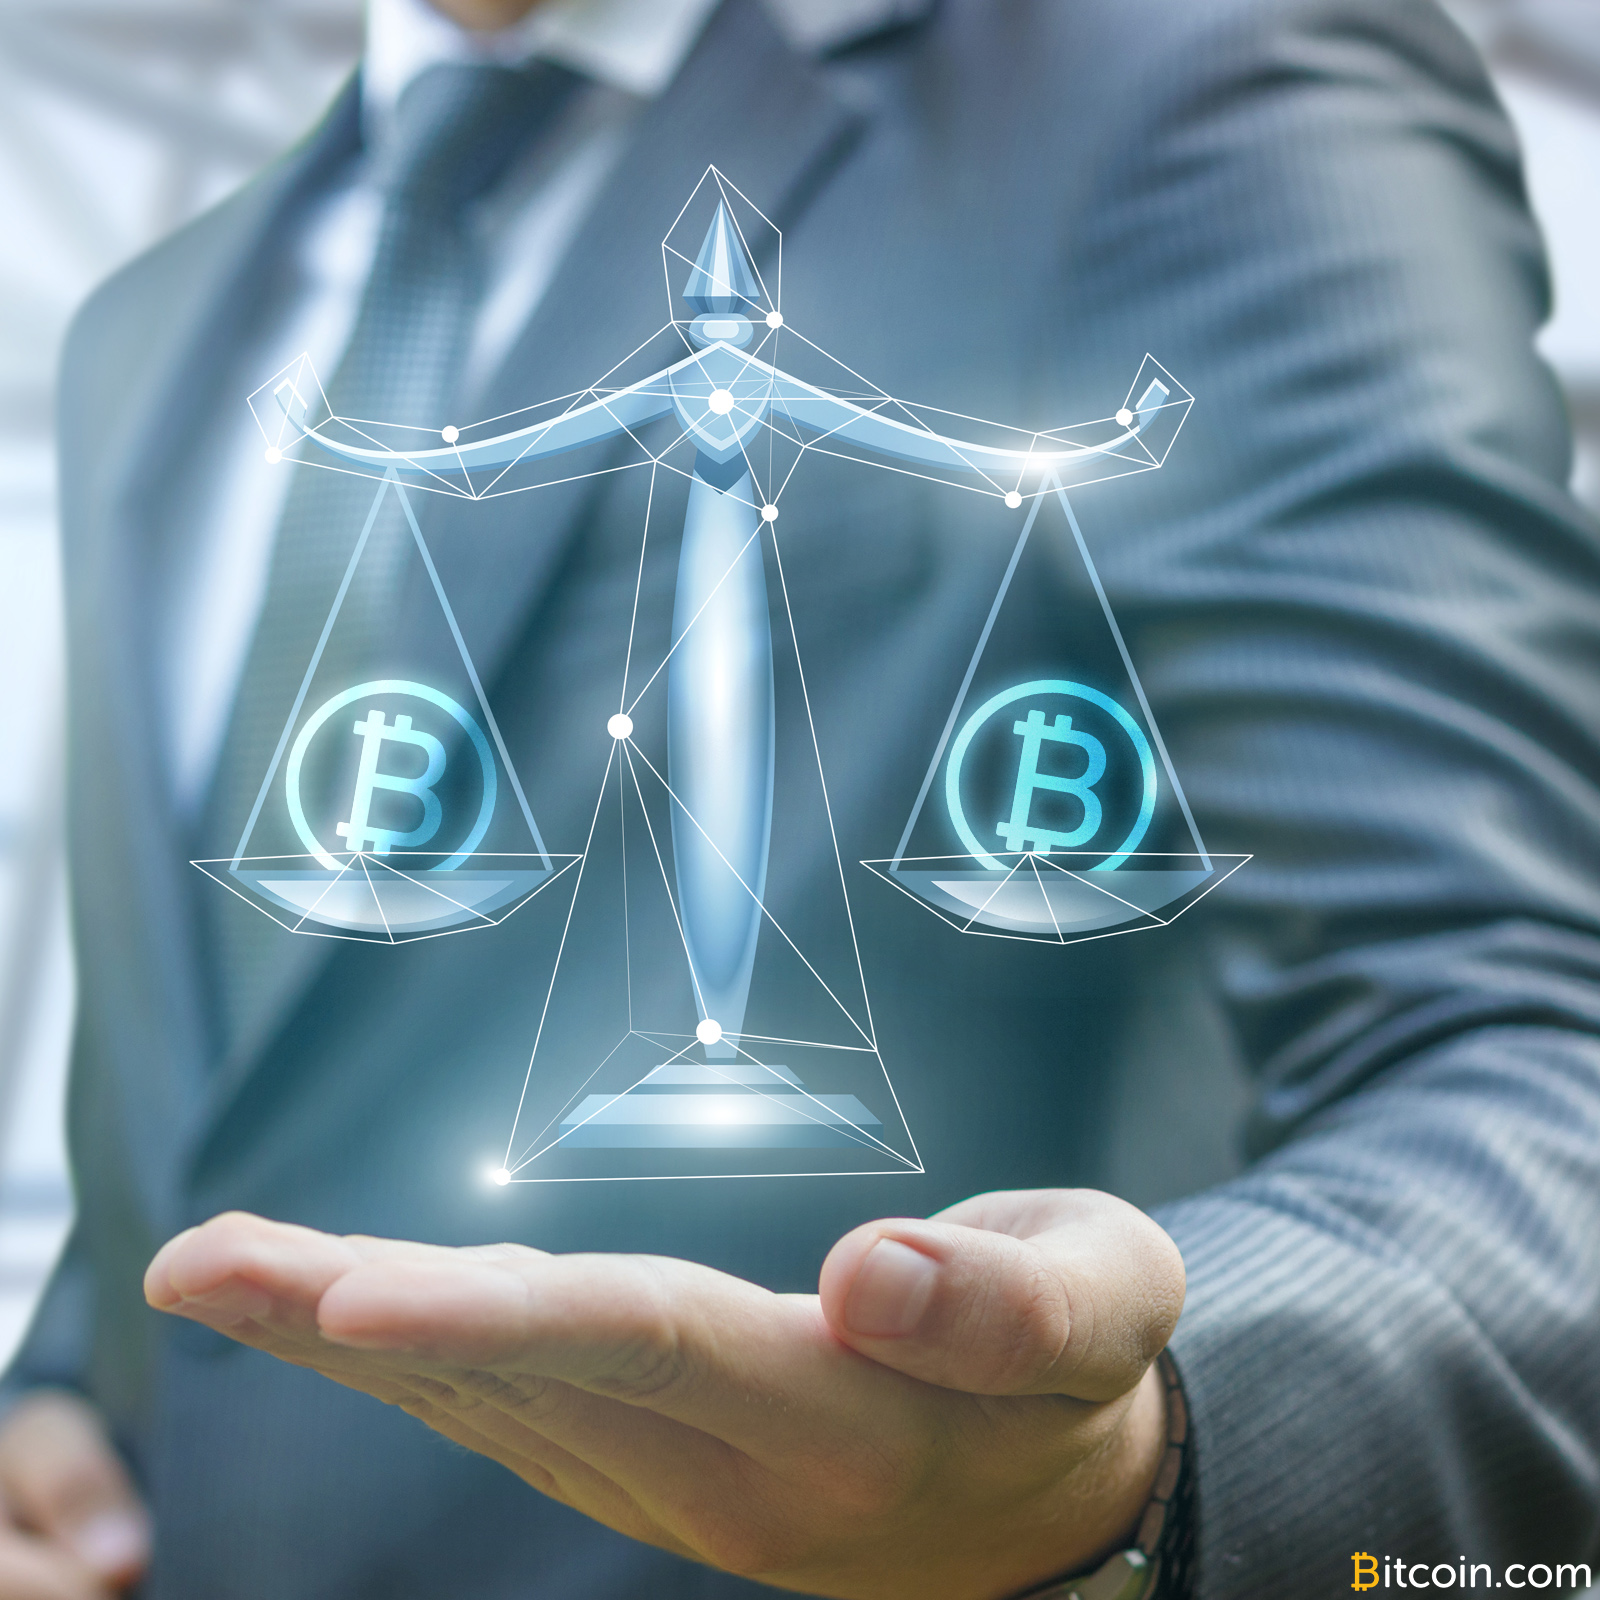 How the Blockchain Provides Private Justice